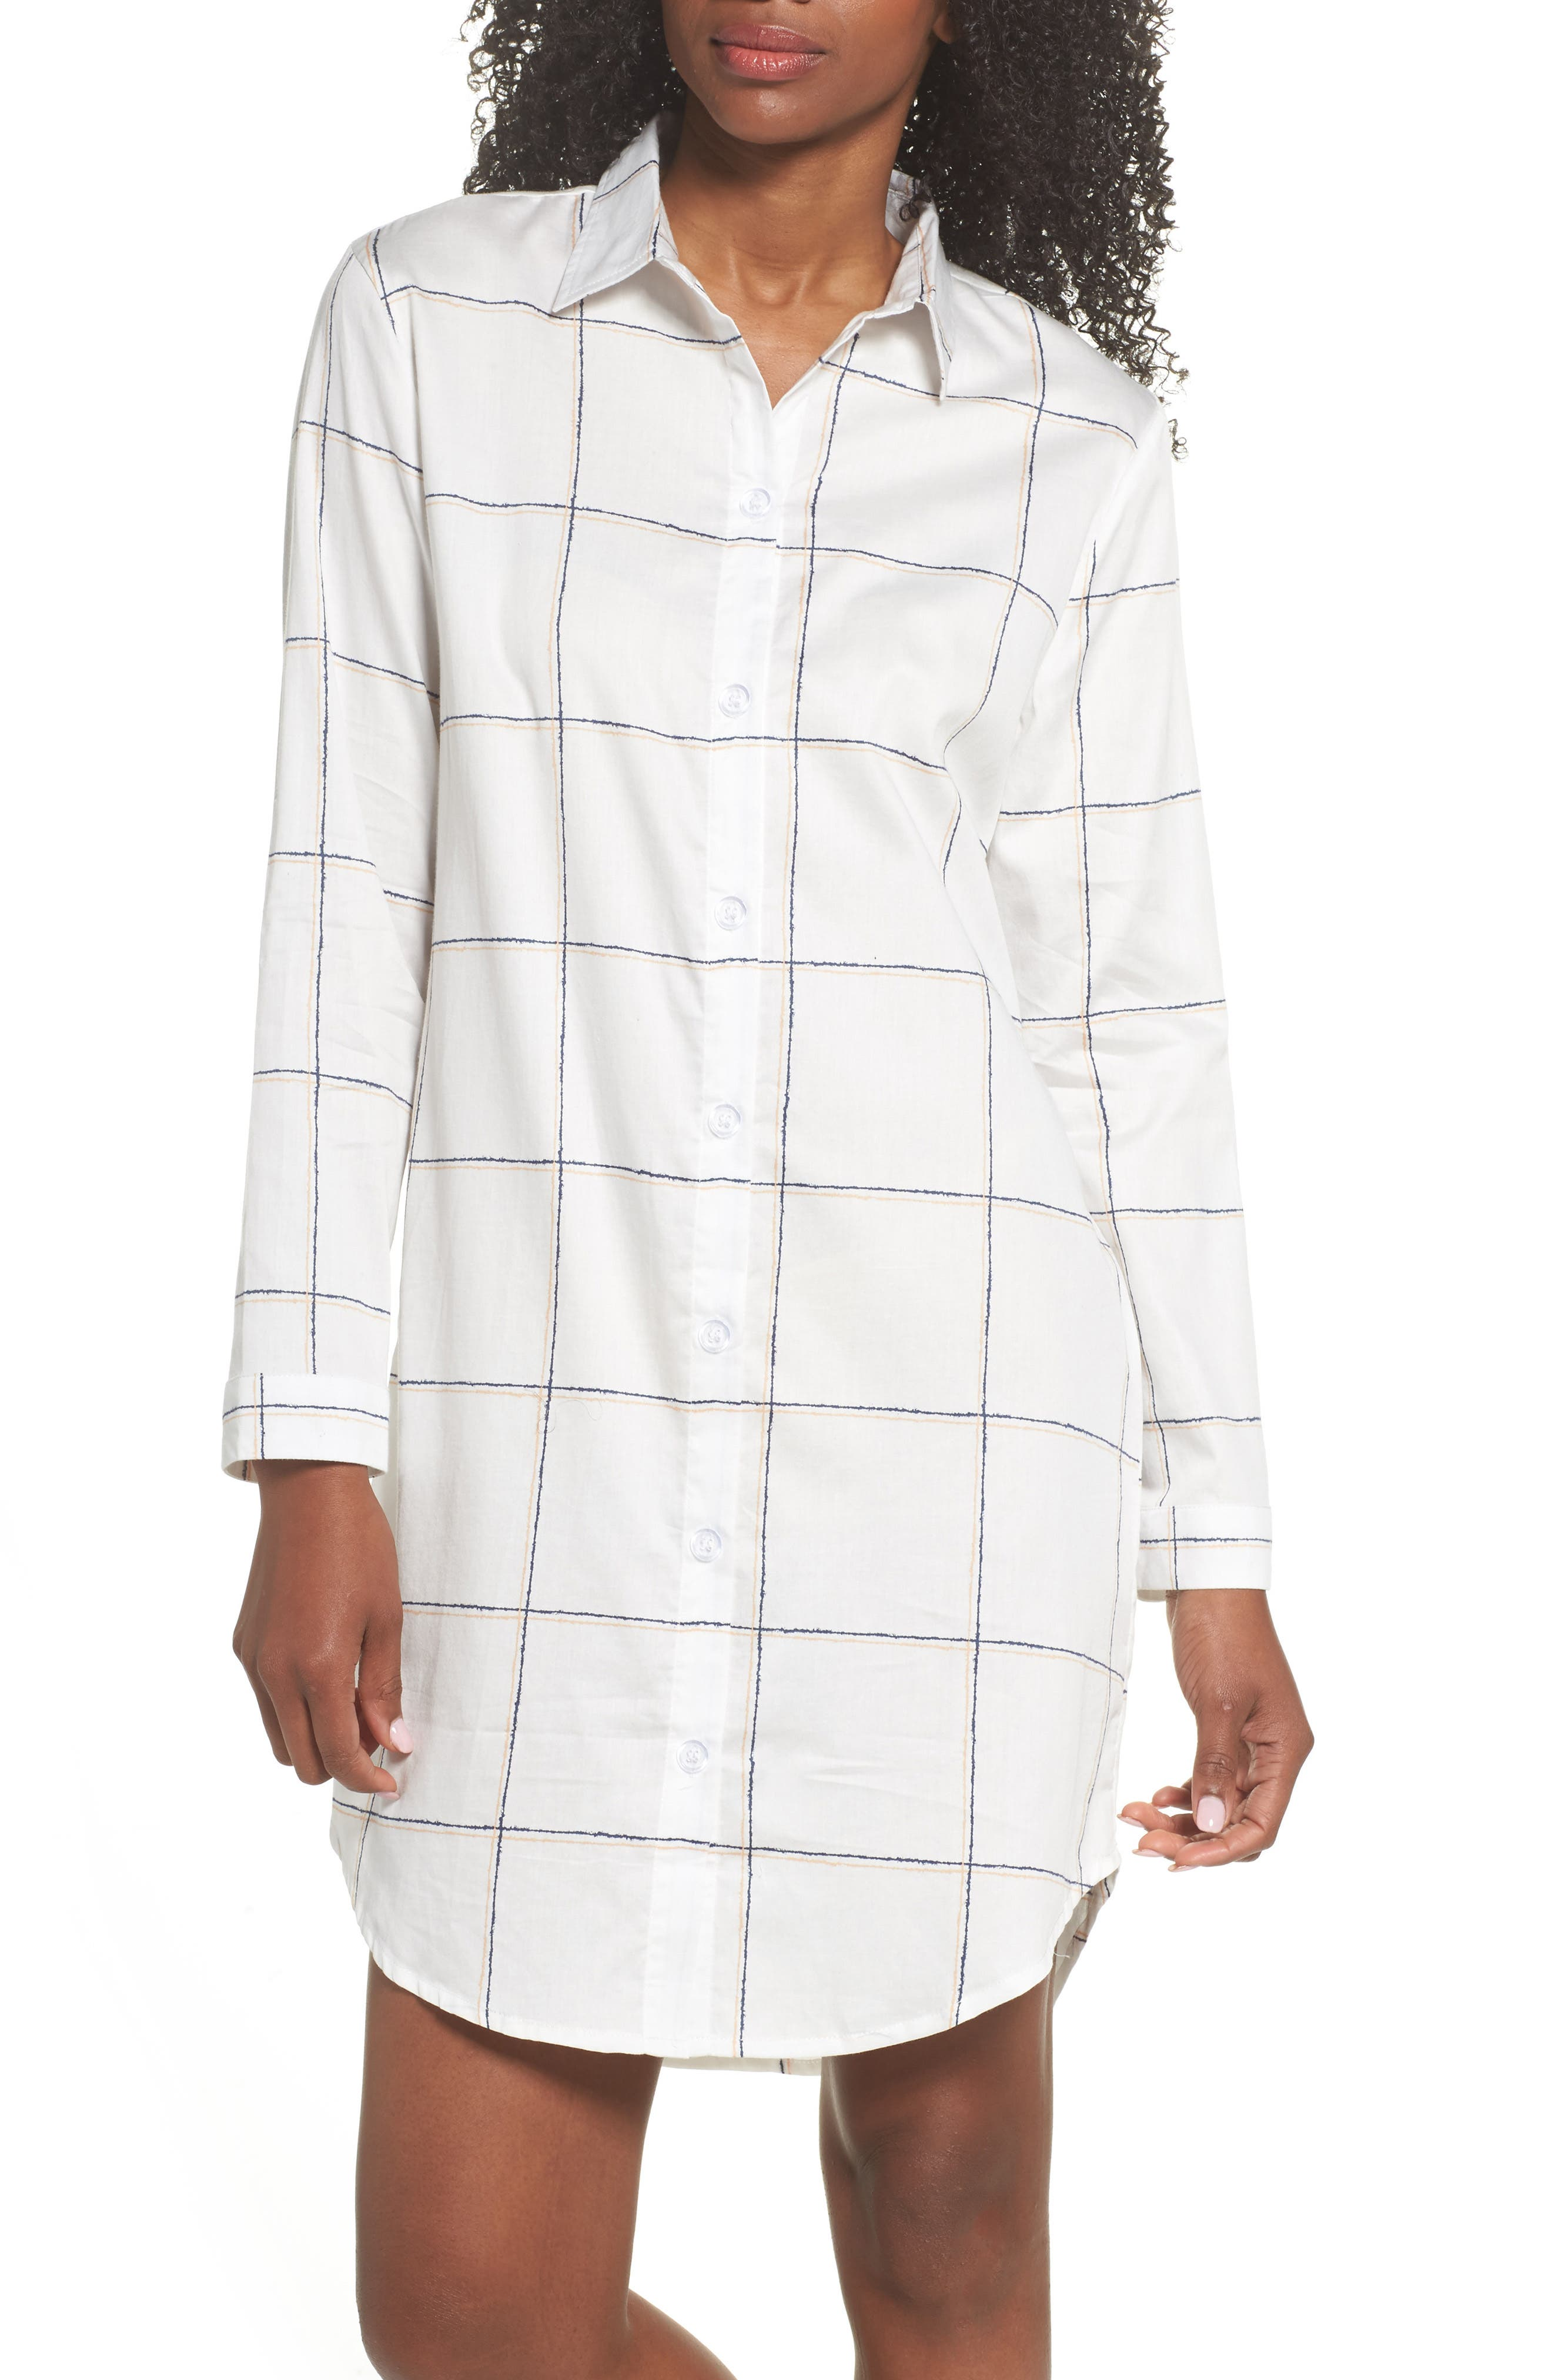 Evey Nightshirt,                         Main,                         color, Coffee Check White